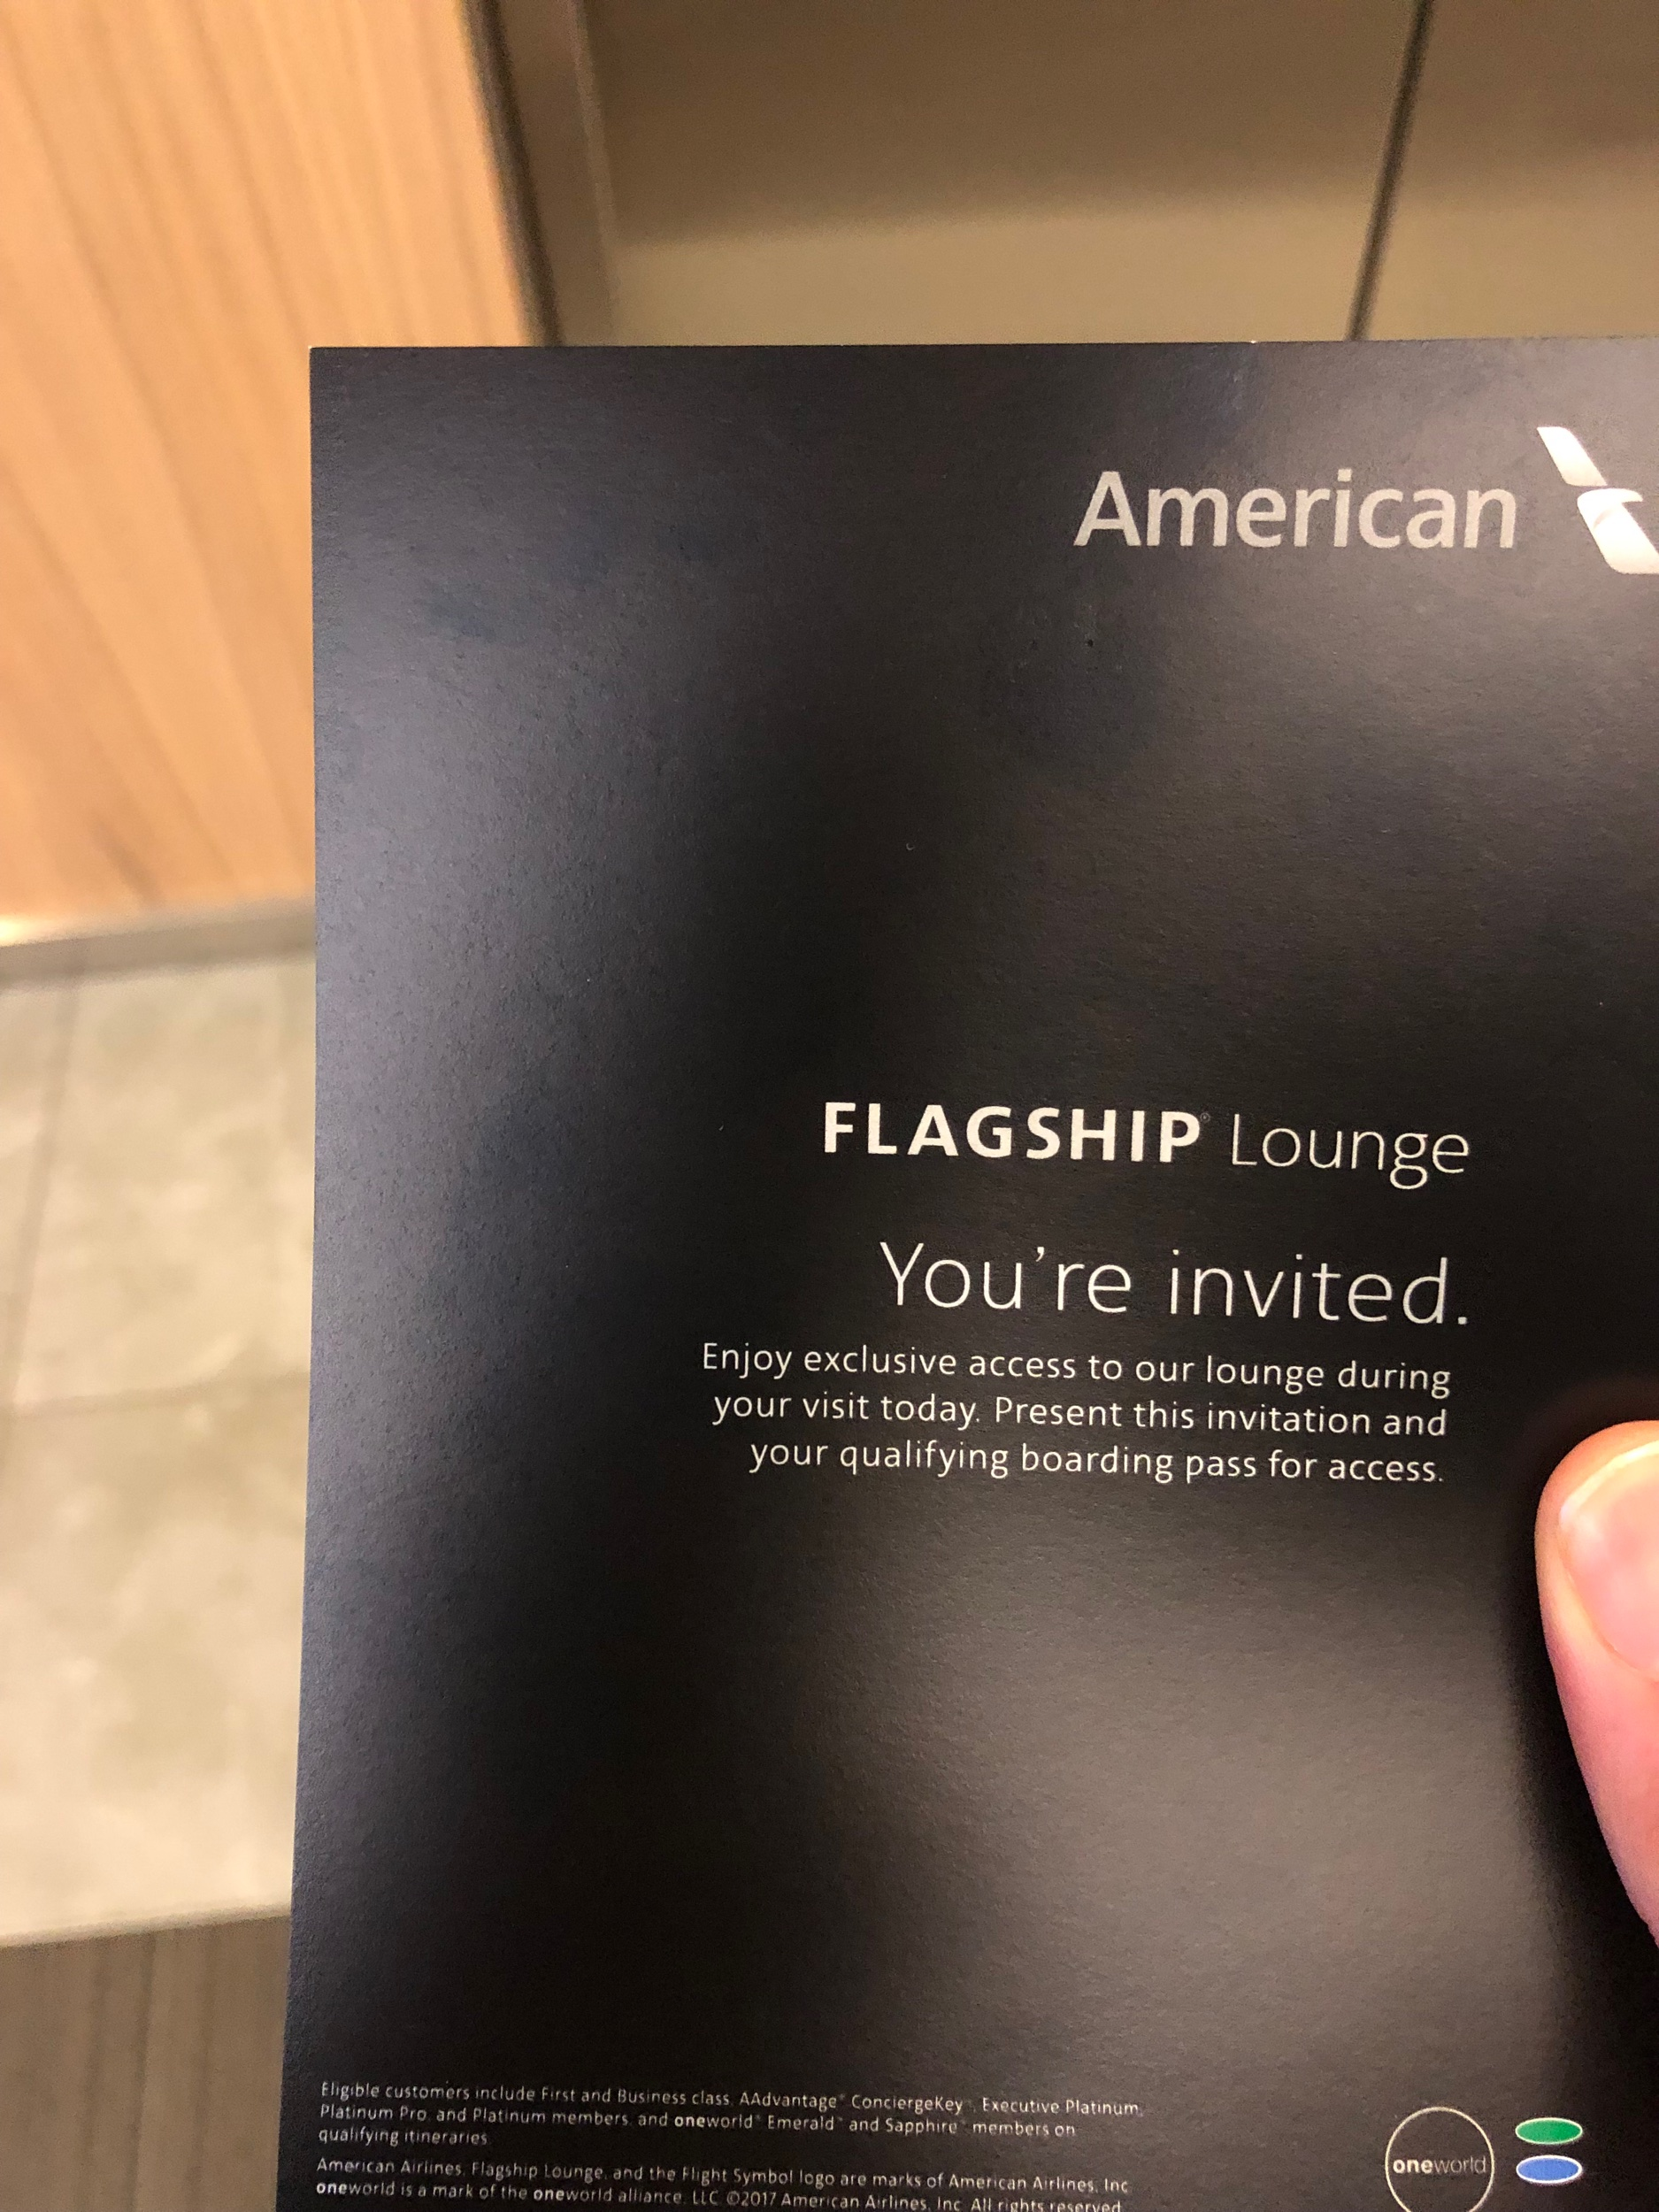 American Airlines Flagship Lounge Invitation Card